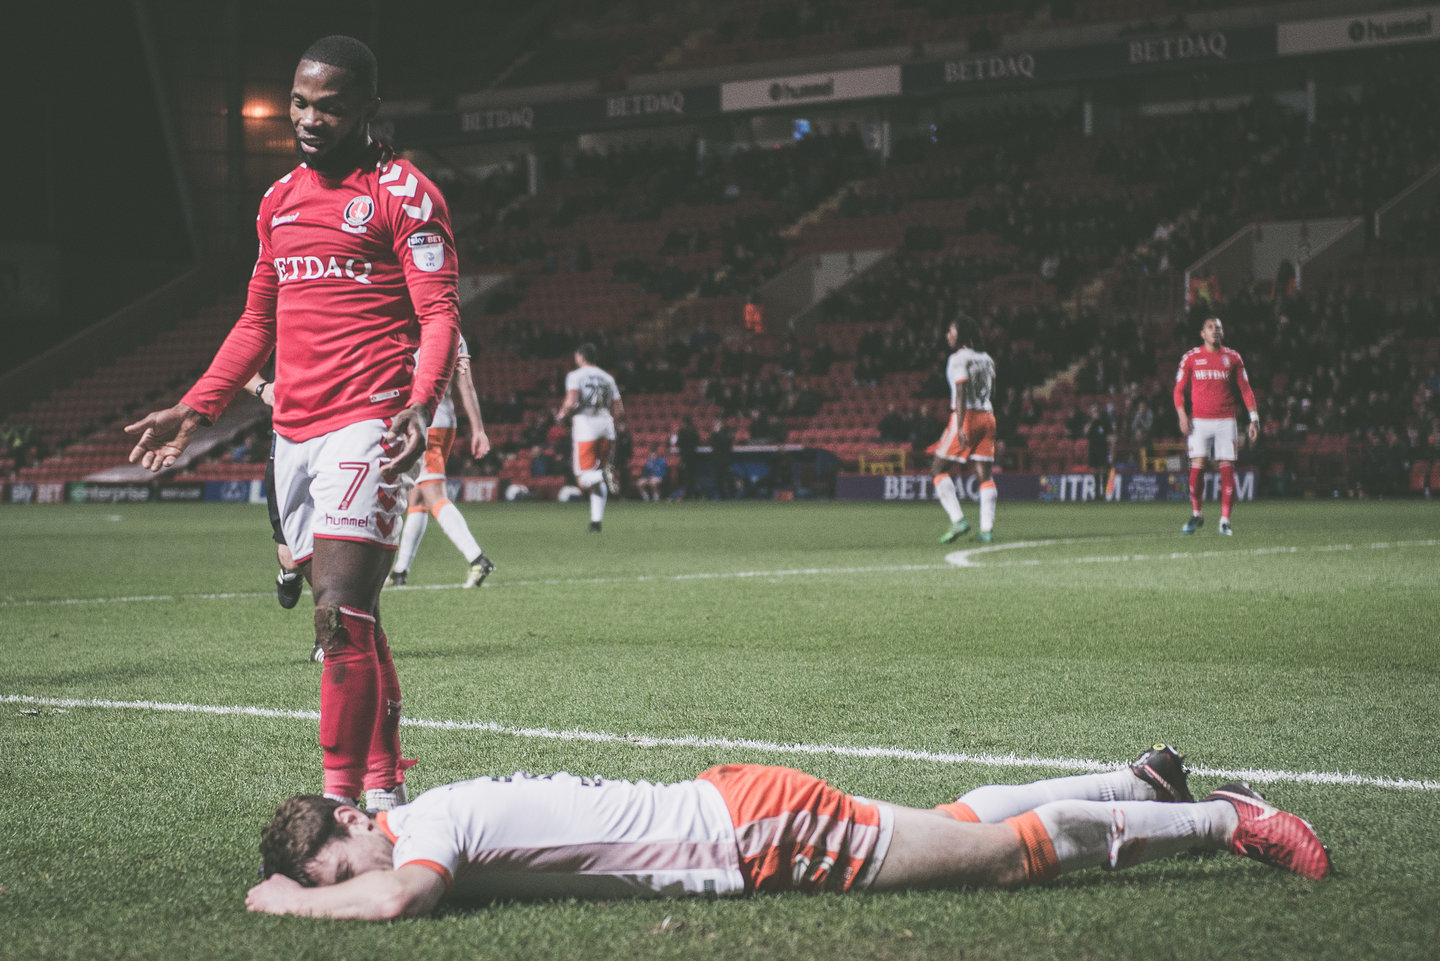 Charlton Athletic Vs Blackpool